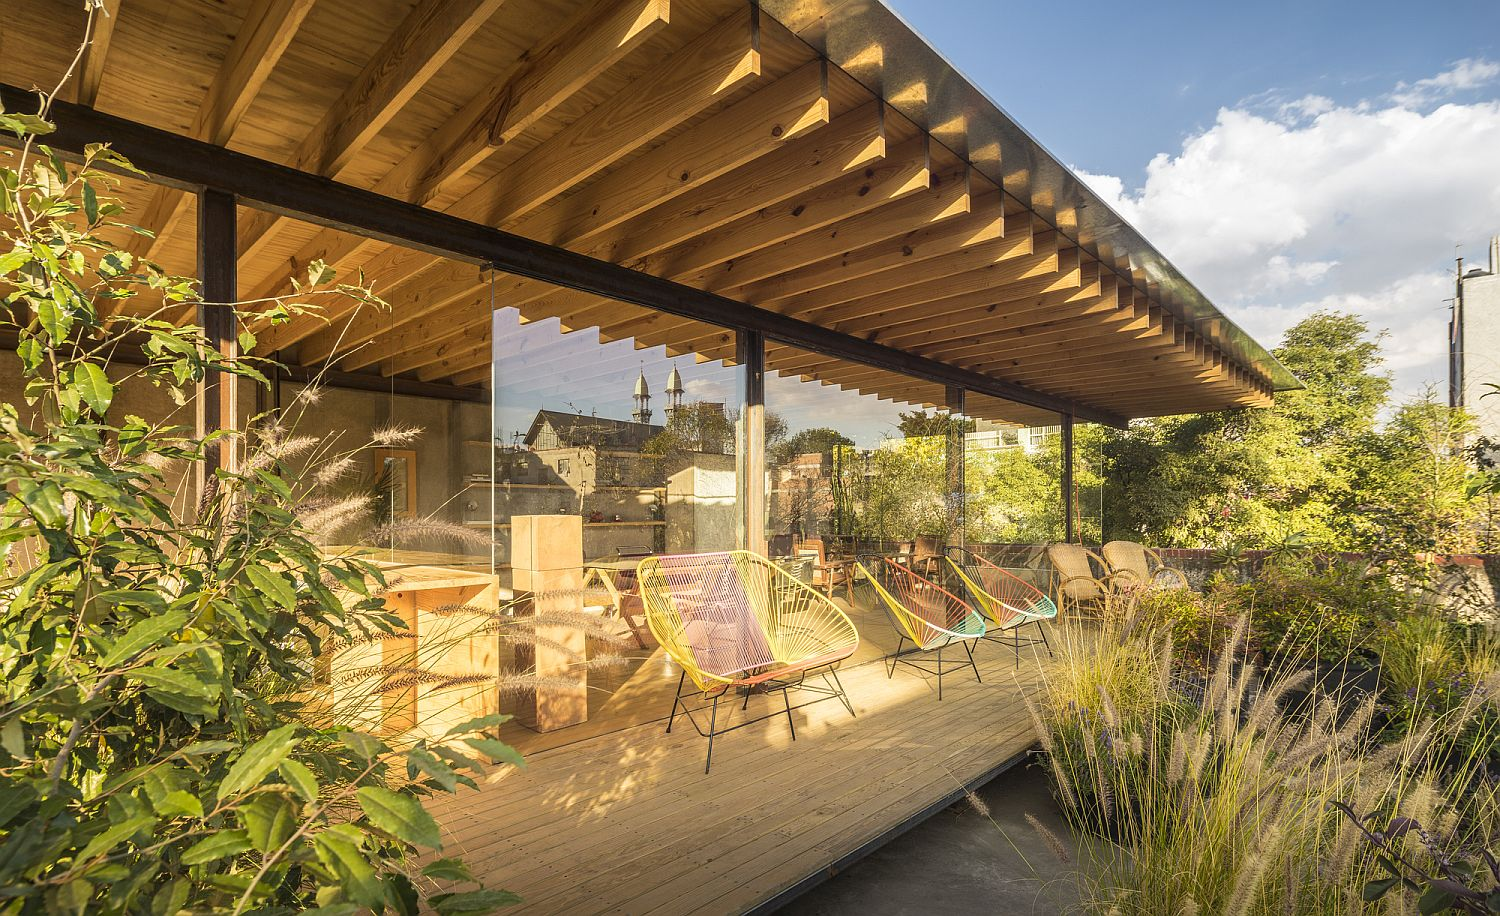 Sweeping deck next to the interior courtyard offers a tranquil sitting area